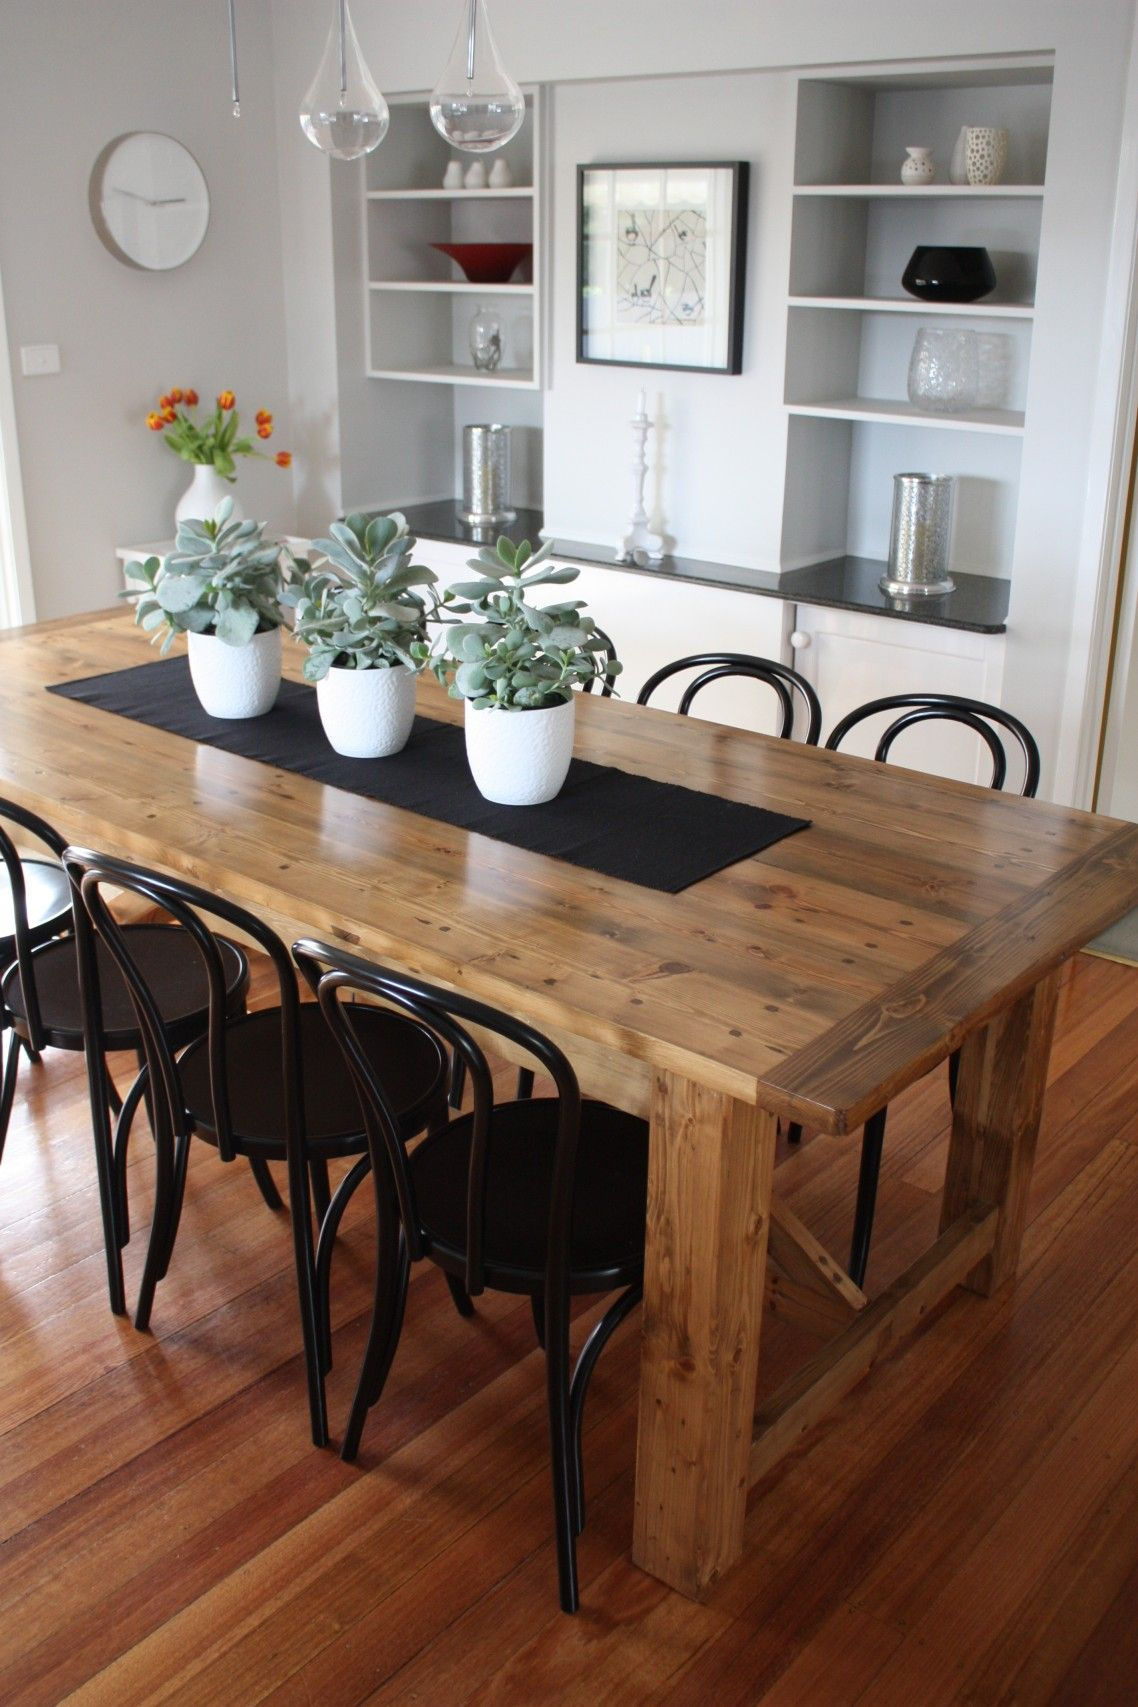 Simple Dining Room Plan Ideas Showing Chic Custom Reclaimed Wood